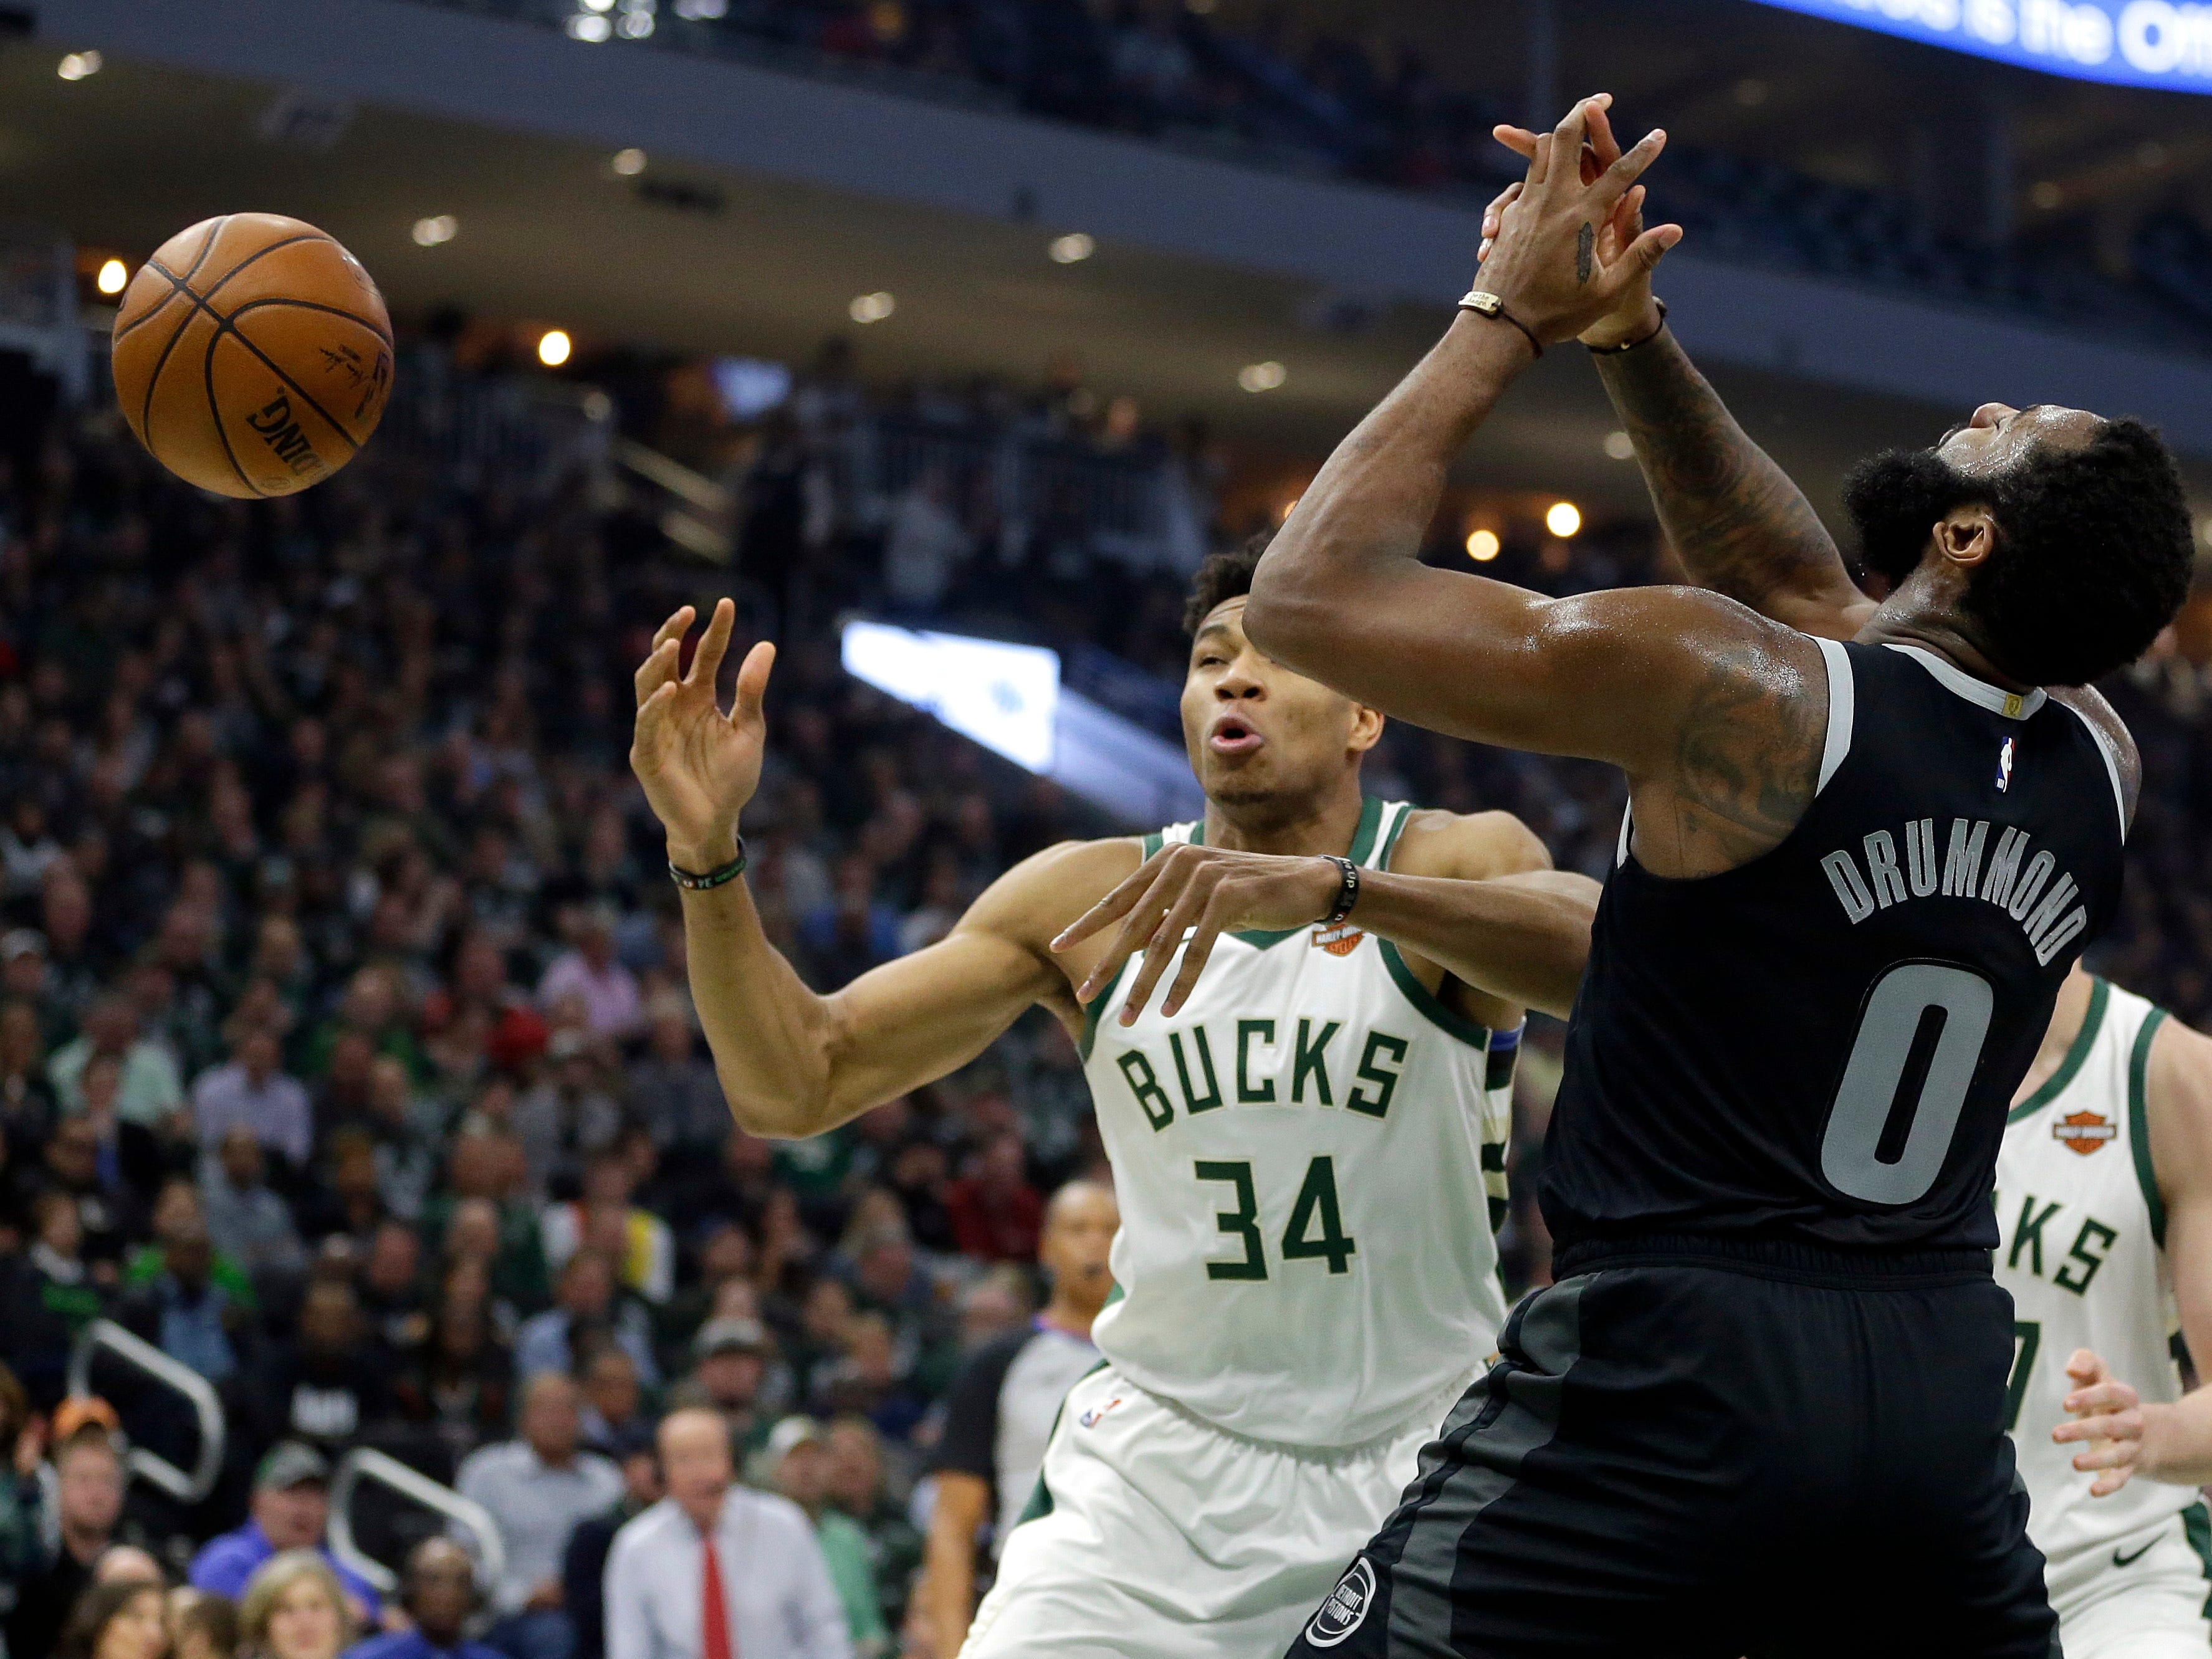 Detroit Pistons' Andre Drummond (0) and Milwaukee Bucks' Giannis Antetokounmpo (34) go for a loose ball during the first half of Game 2.